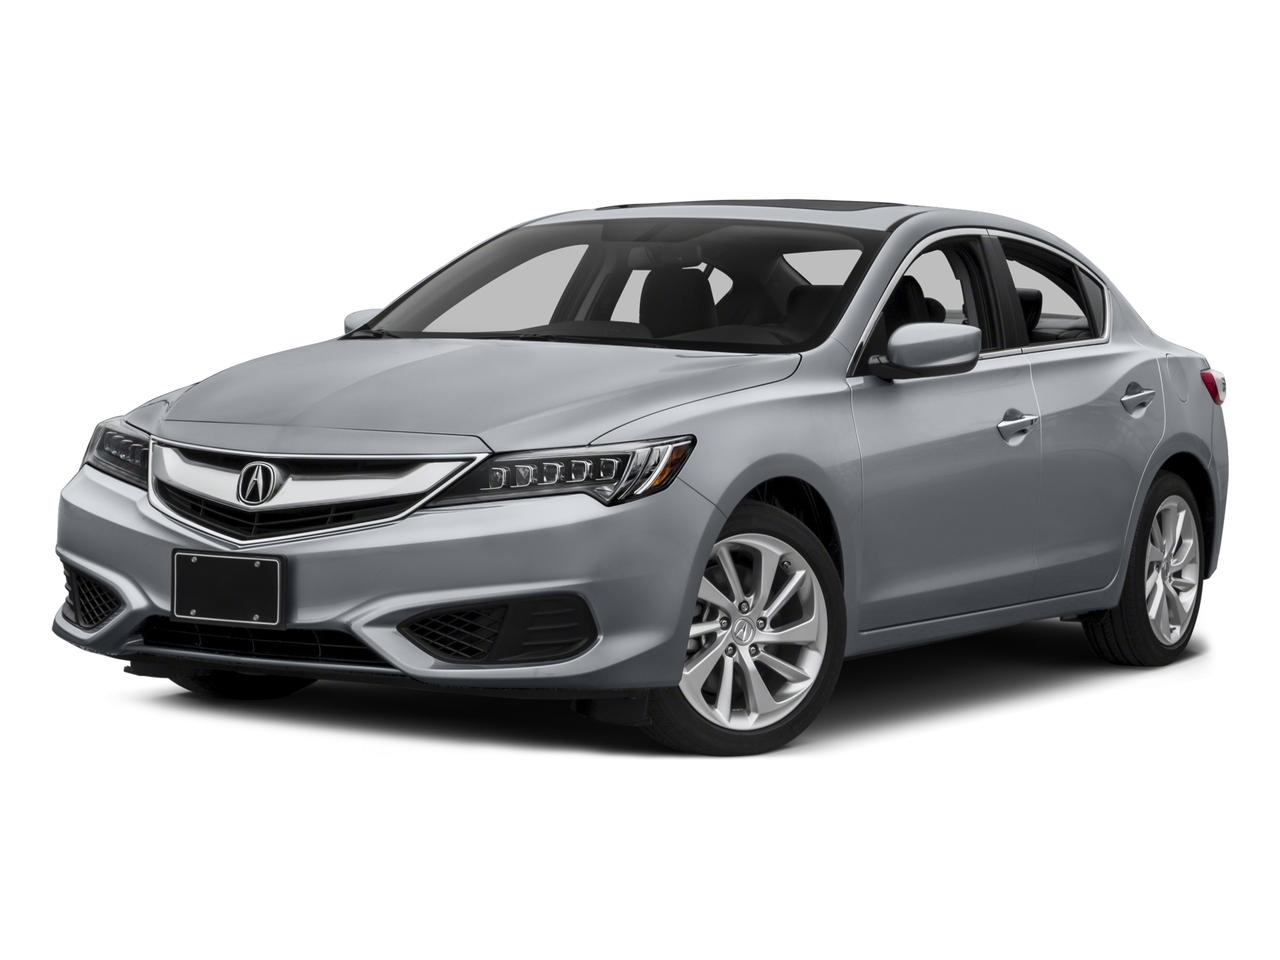 2016 Acura ILX Vehicle Photo in Lake Bluff, IL 60044